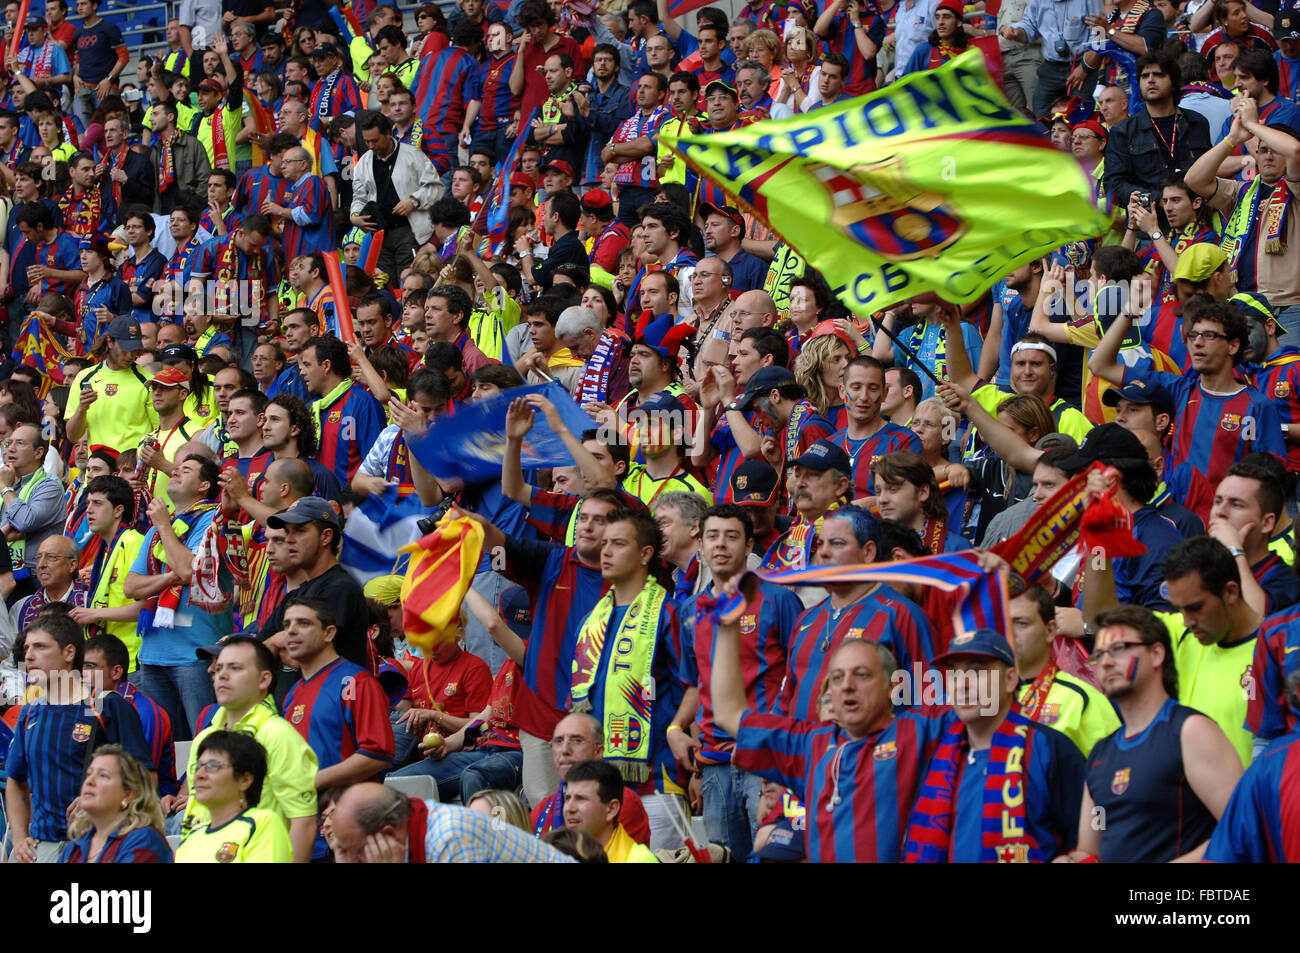 Football Fans - Stock Image